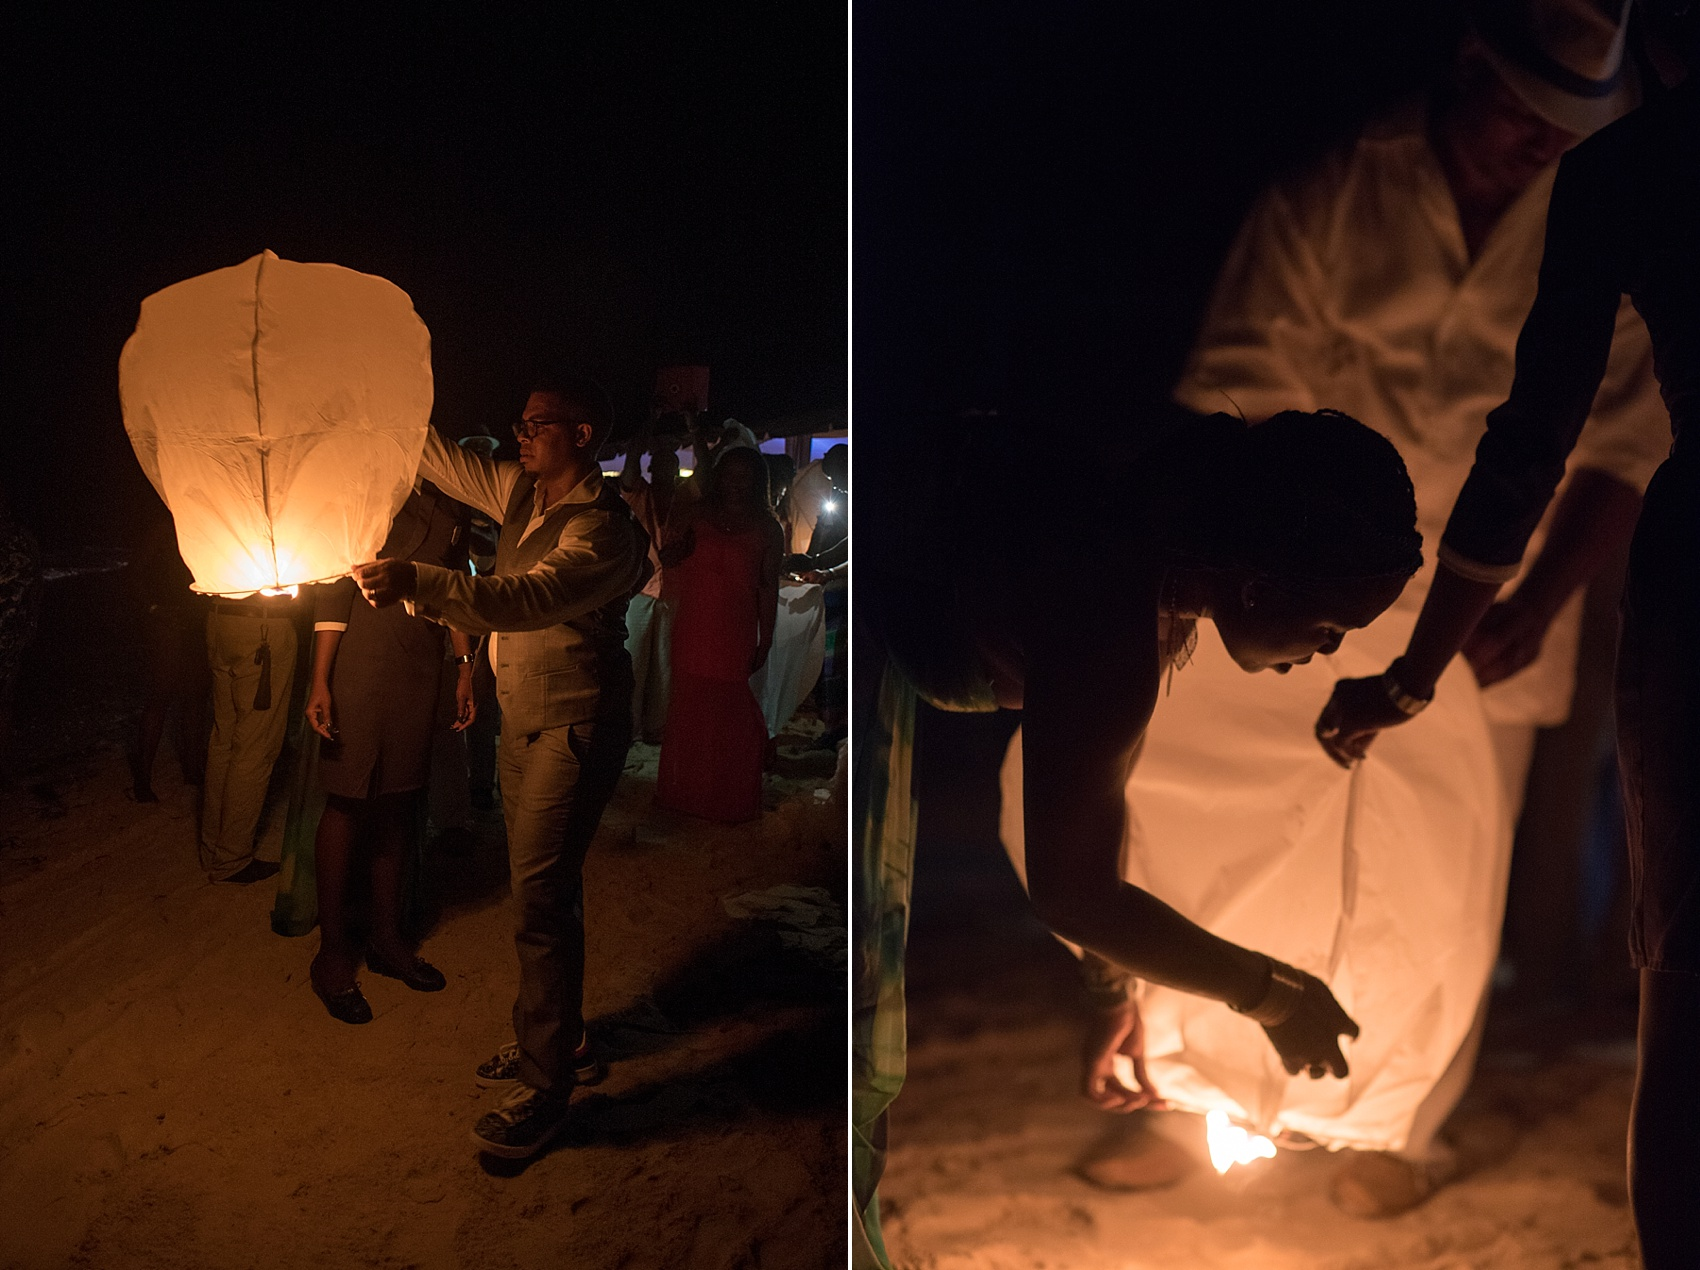 Iberostar Jamaica beach reception Chinese lantern wedding photos. Images by Mikkel Paige Photography.